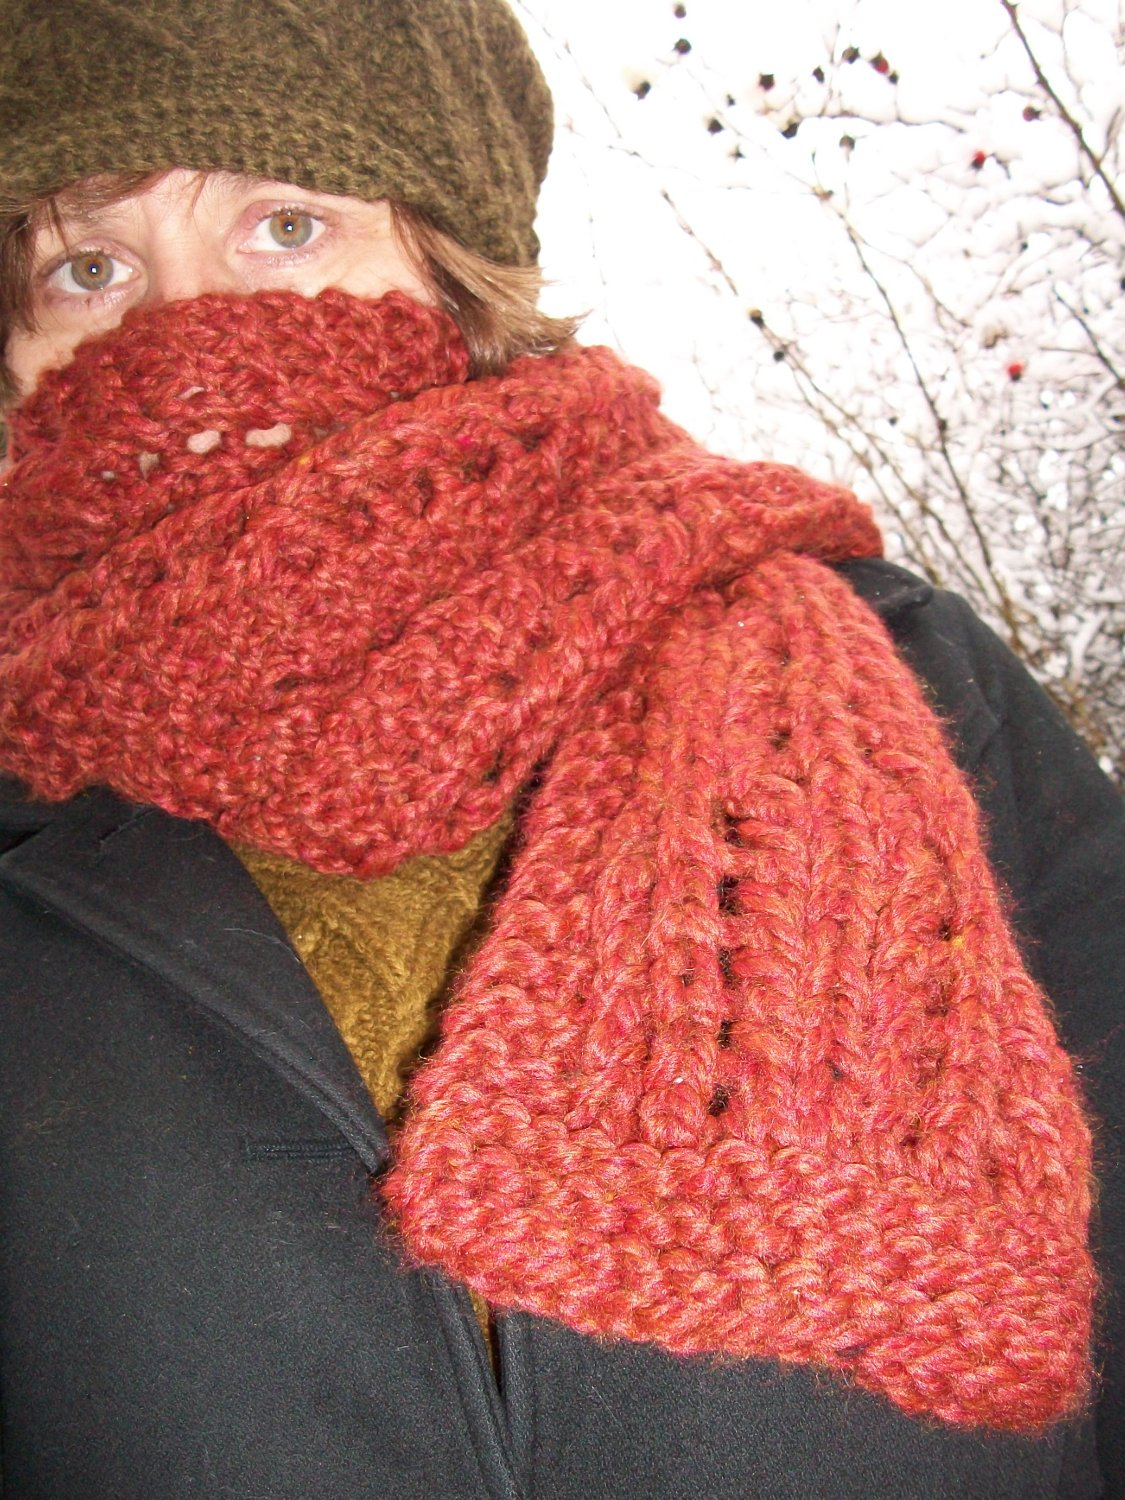 Knitting Pattern For Thick Scarf : Knitting Architect: Great Chunky Scarf knitting pattern